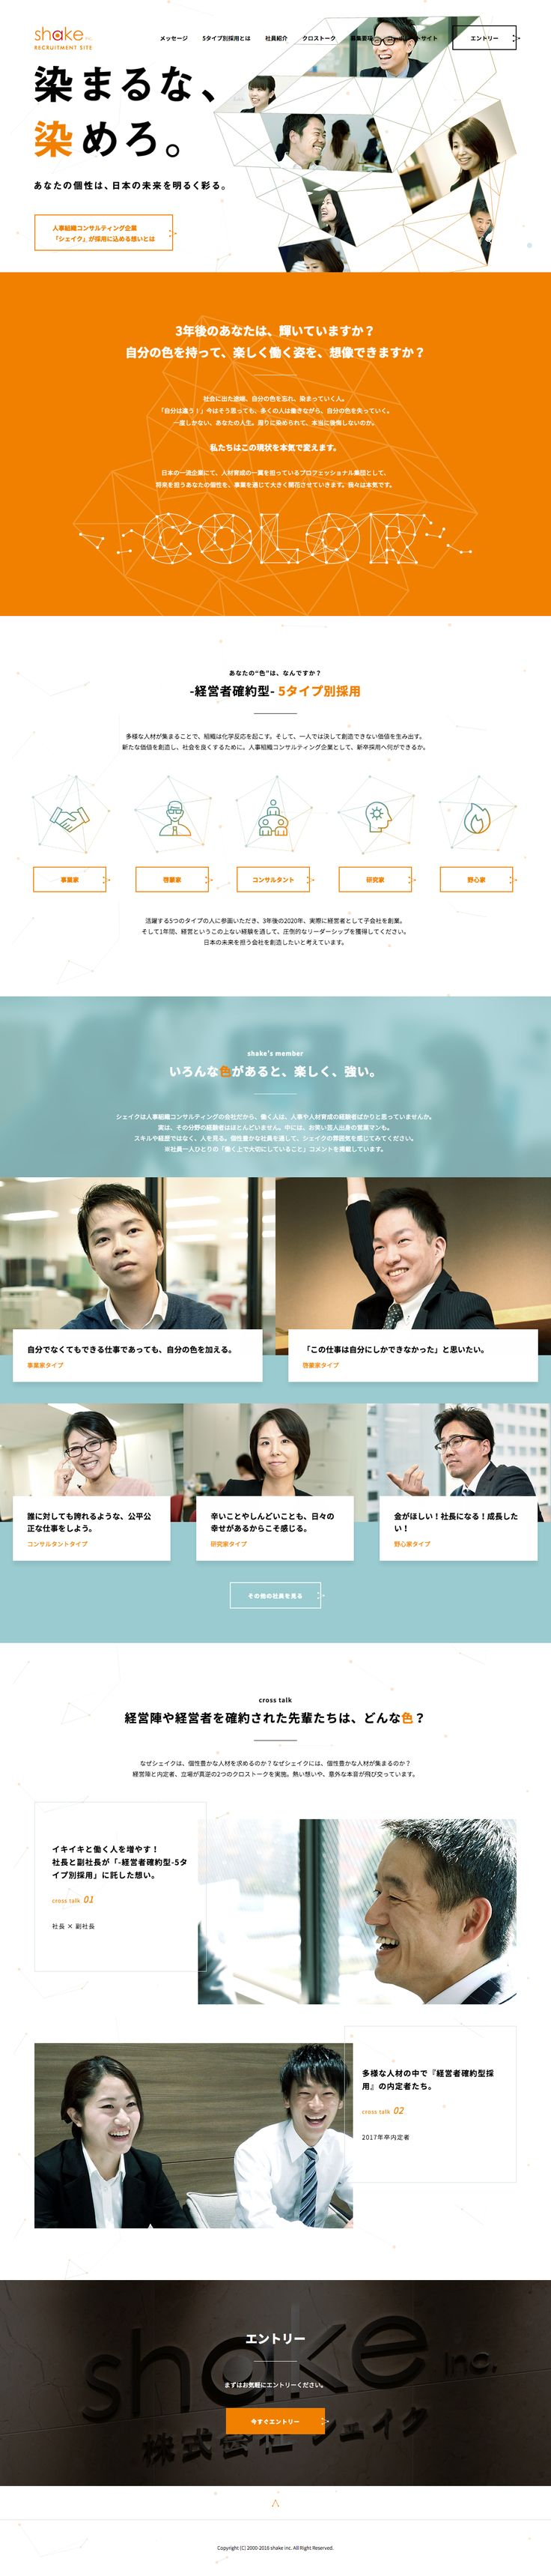 #company-web-design #recruit #1-column-layout #key-color-orange #bg-color-white #Japanese #Flat-design #Photographic